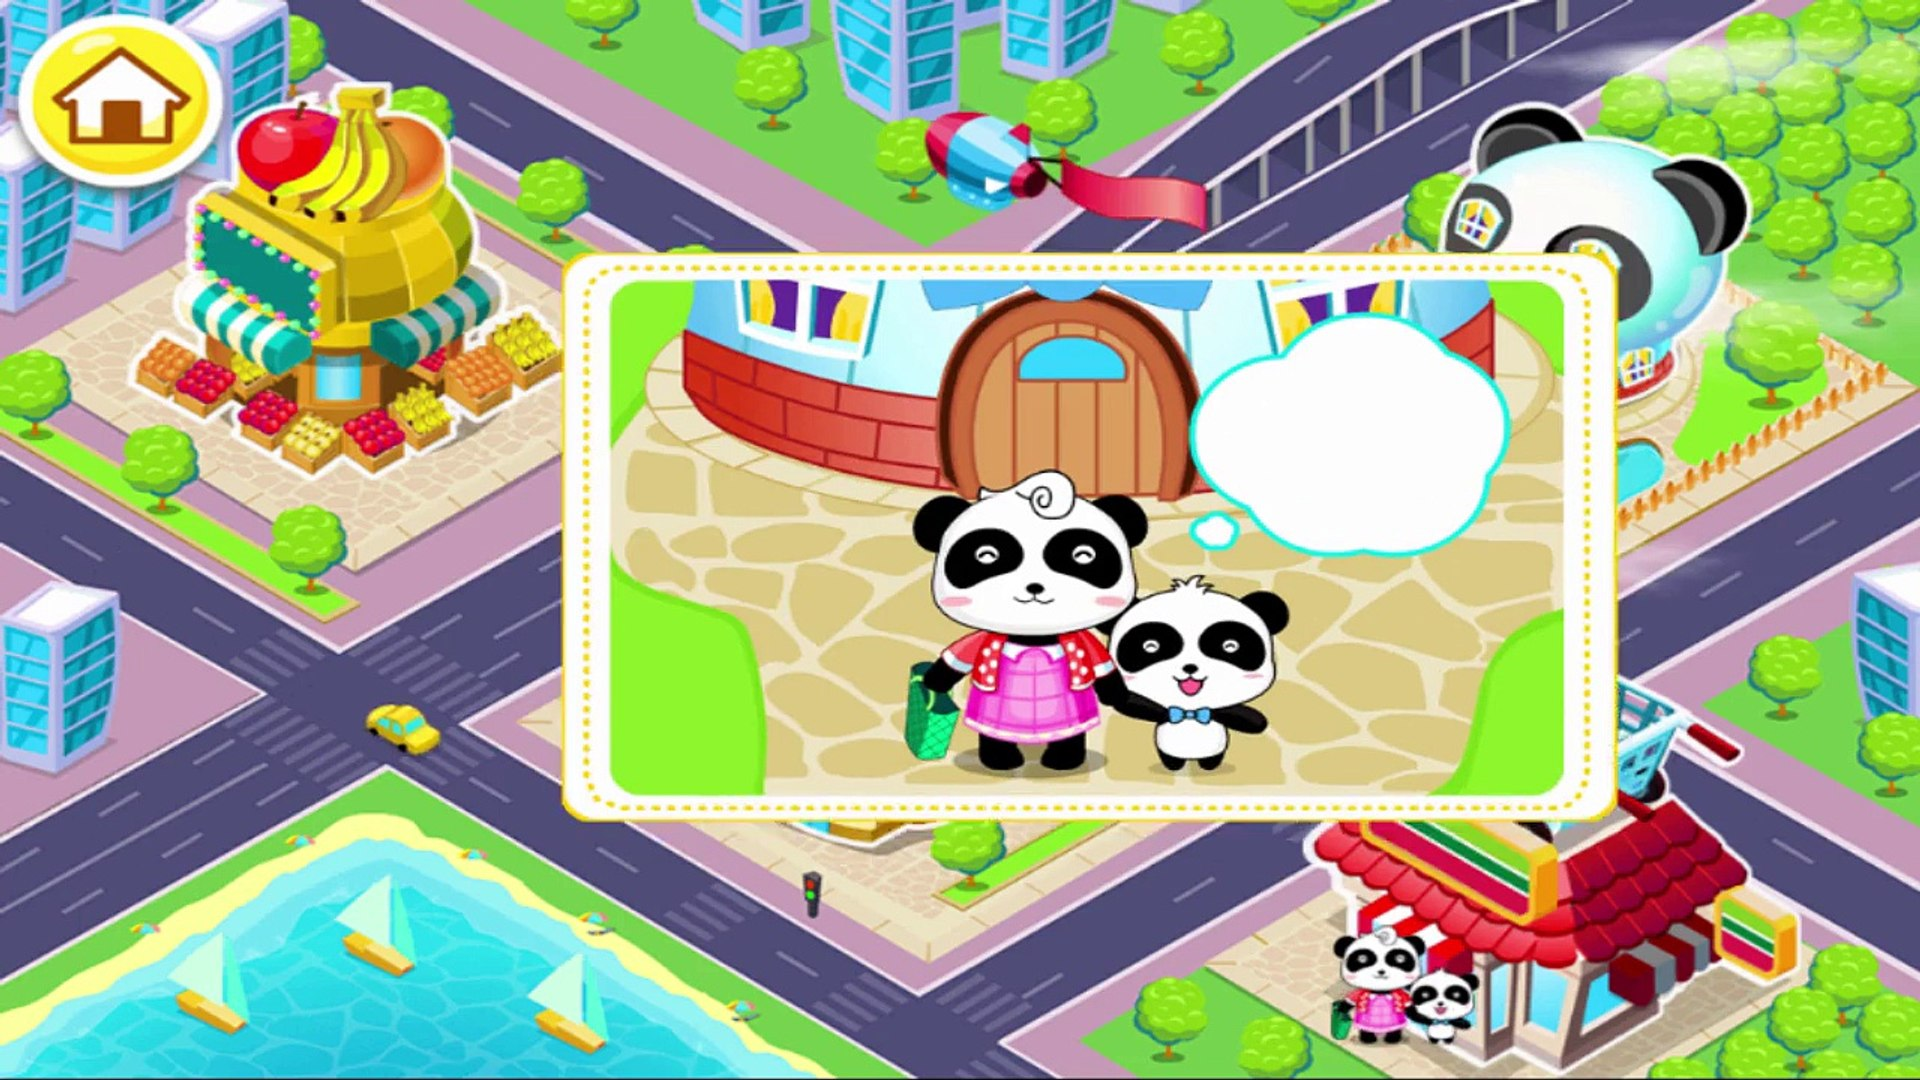 Kids learn about Life while traveling - Tips for Kids with Baby Panda Game Travel Safety Babybus